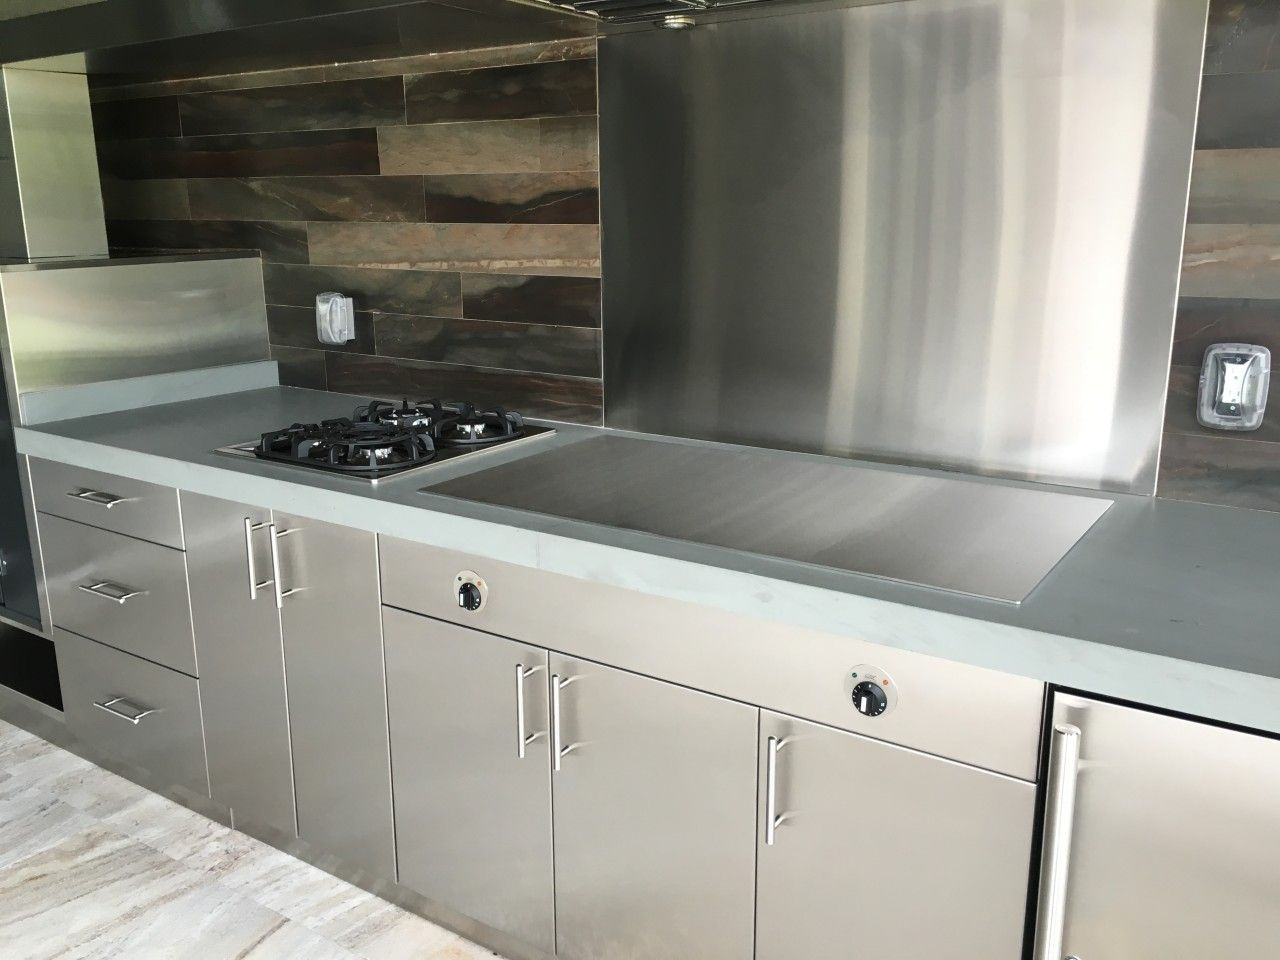 This Teppanyakigrills All Stainless Steel Outdoor Kitchen Comes In At Number 8 Of The Top 2019 Posts In 2020 Outdoor Kitchen Appliances Outdoor Kitchen Kitchen Design